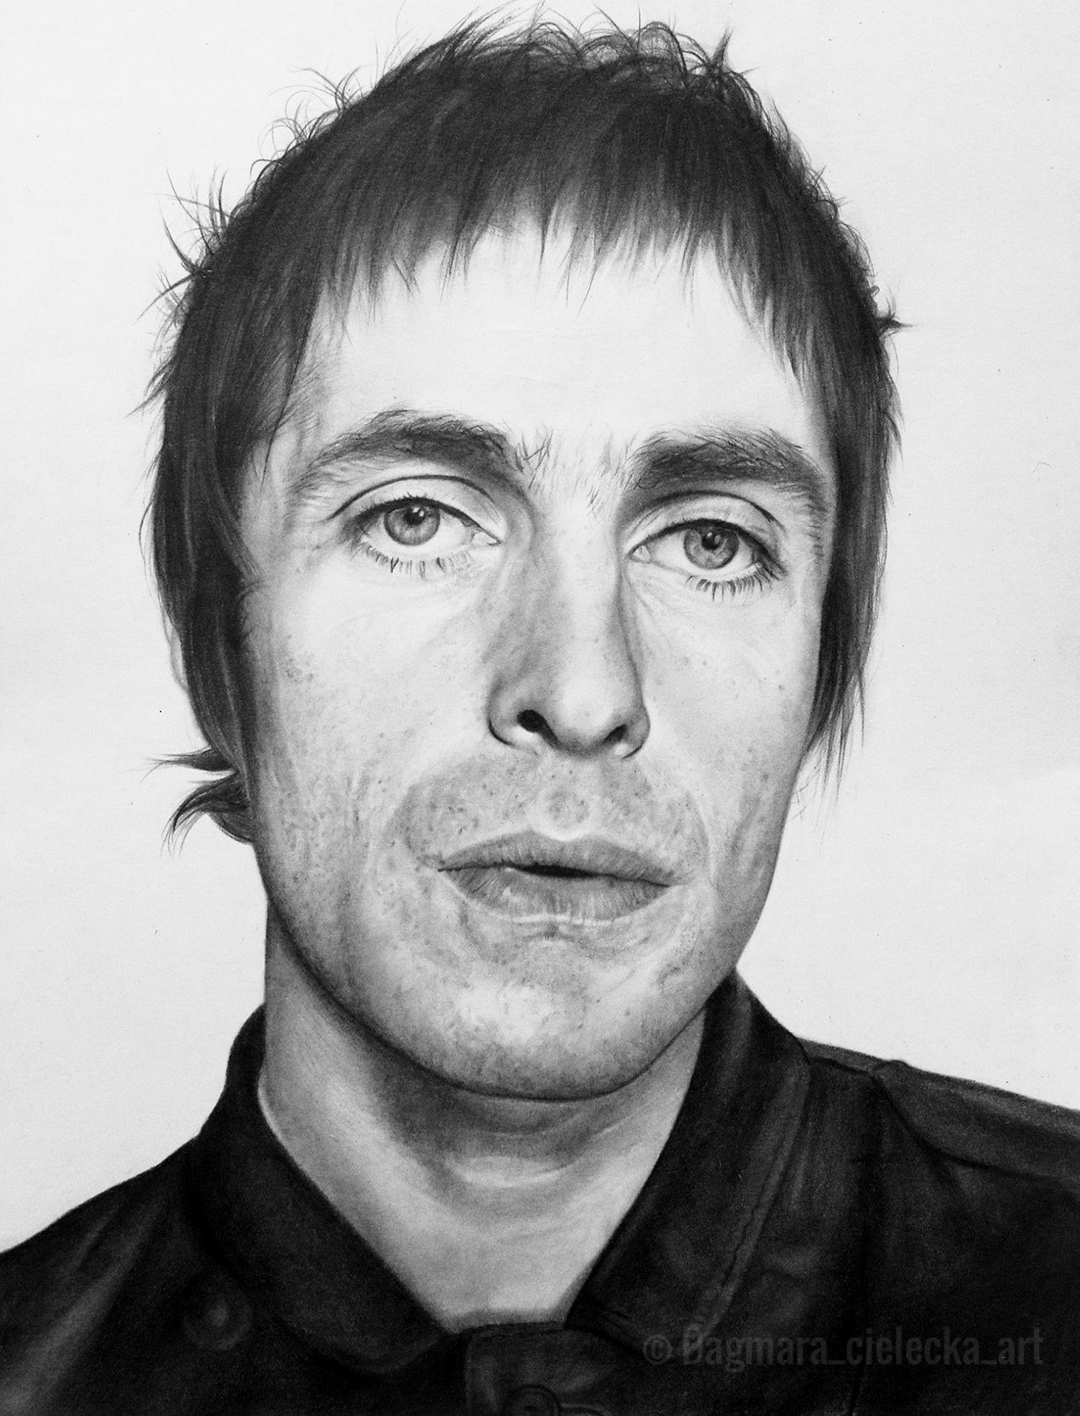 Liam Gallagher Pencil Portrait